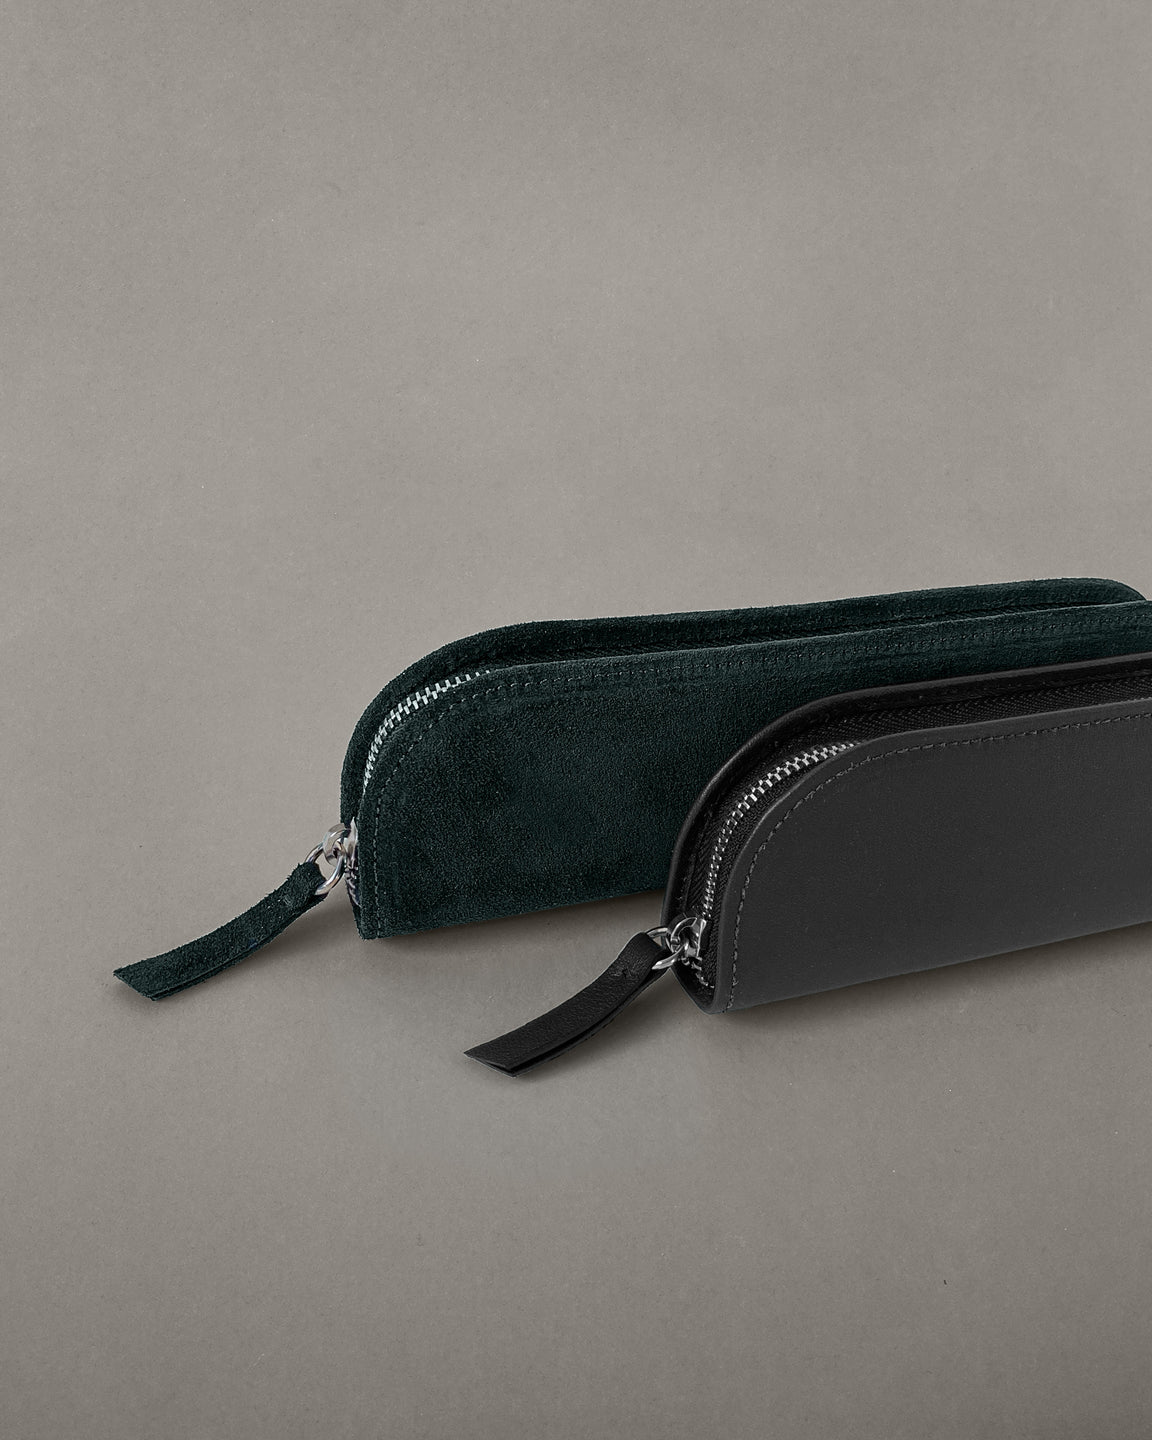 Leather Pencil Case in Black - Leather Pencil Case in Black